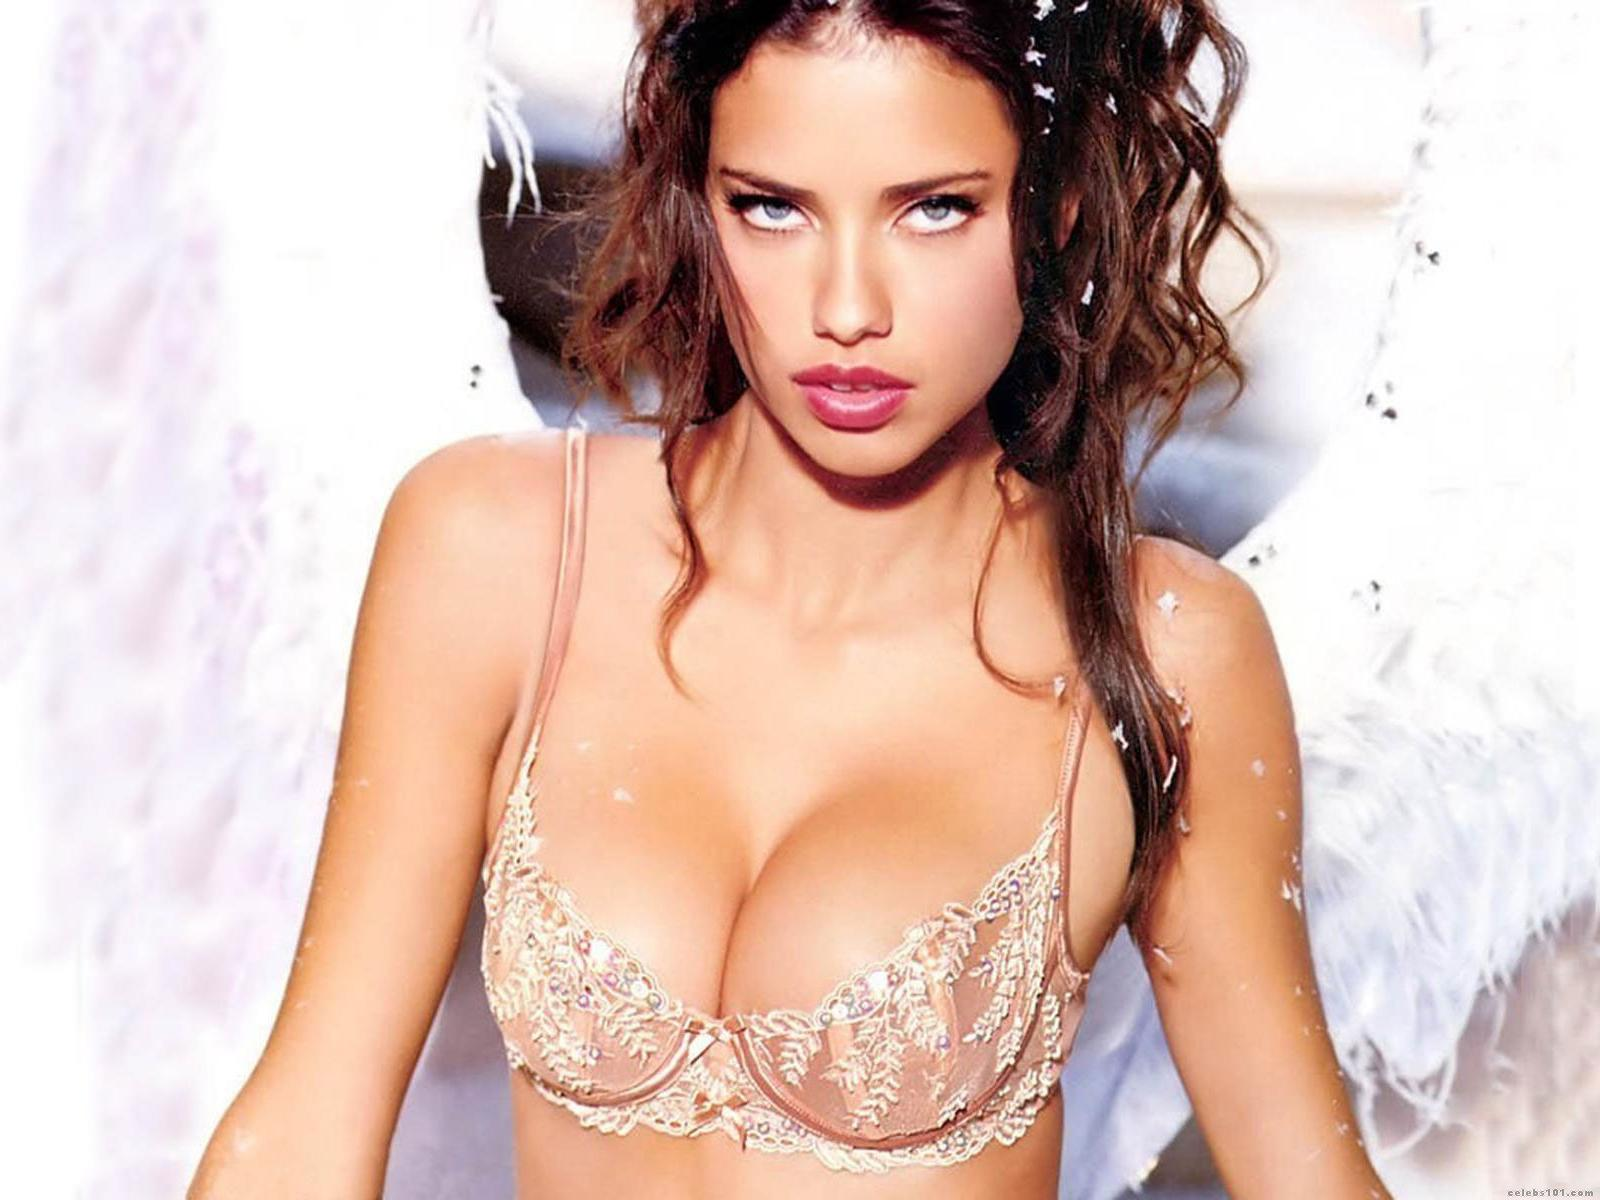 Adriana Lima Wallpapers Hot Girl Very Sexy in Bra Without Clothes ...